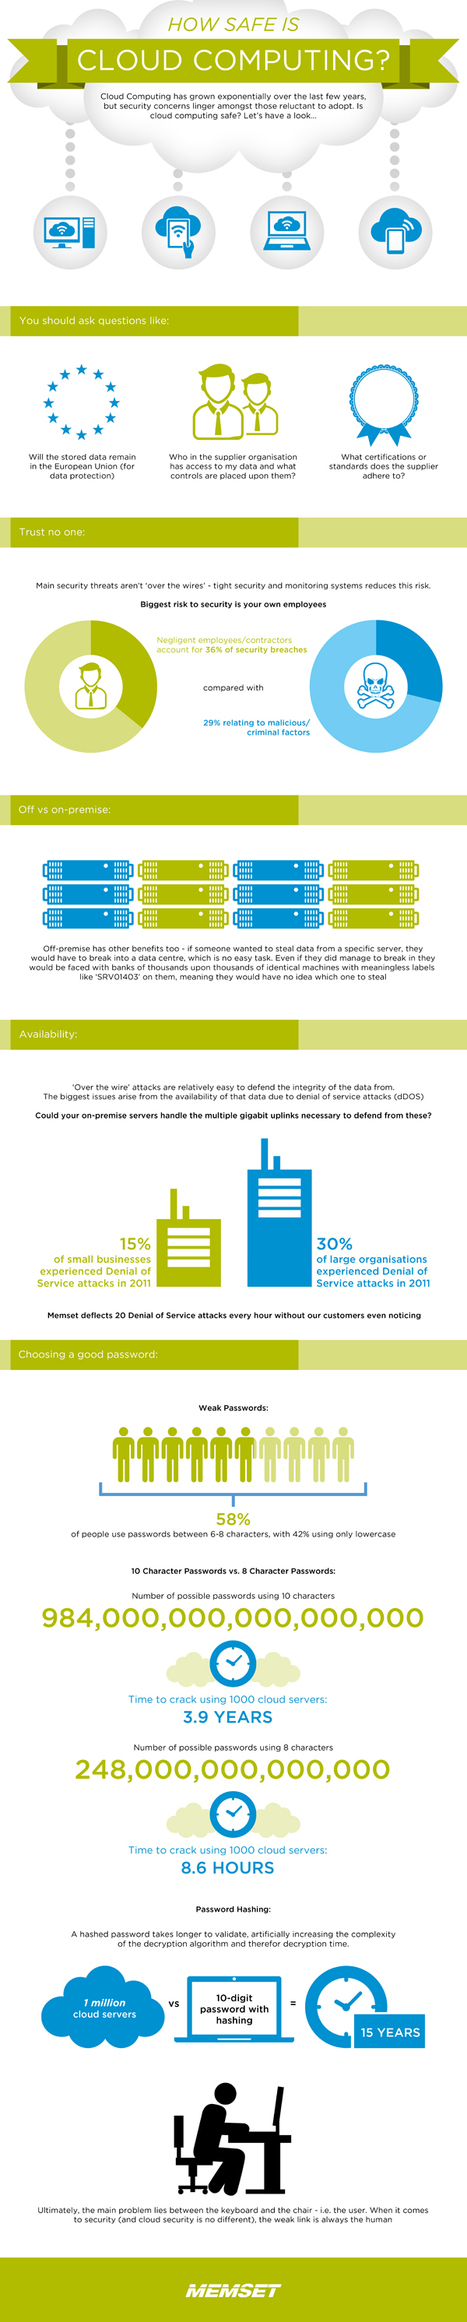 INFOGRAPHIC: How Safe is The Cloud? | digitalassetman | Scoop.it